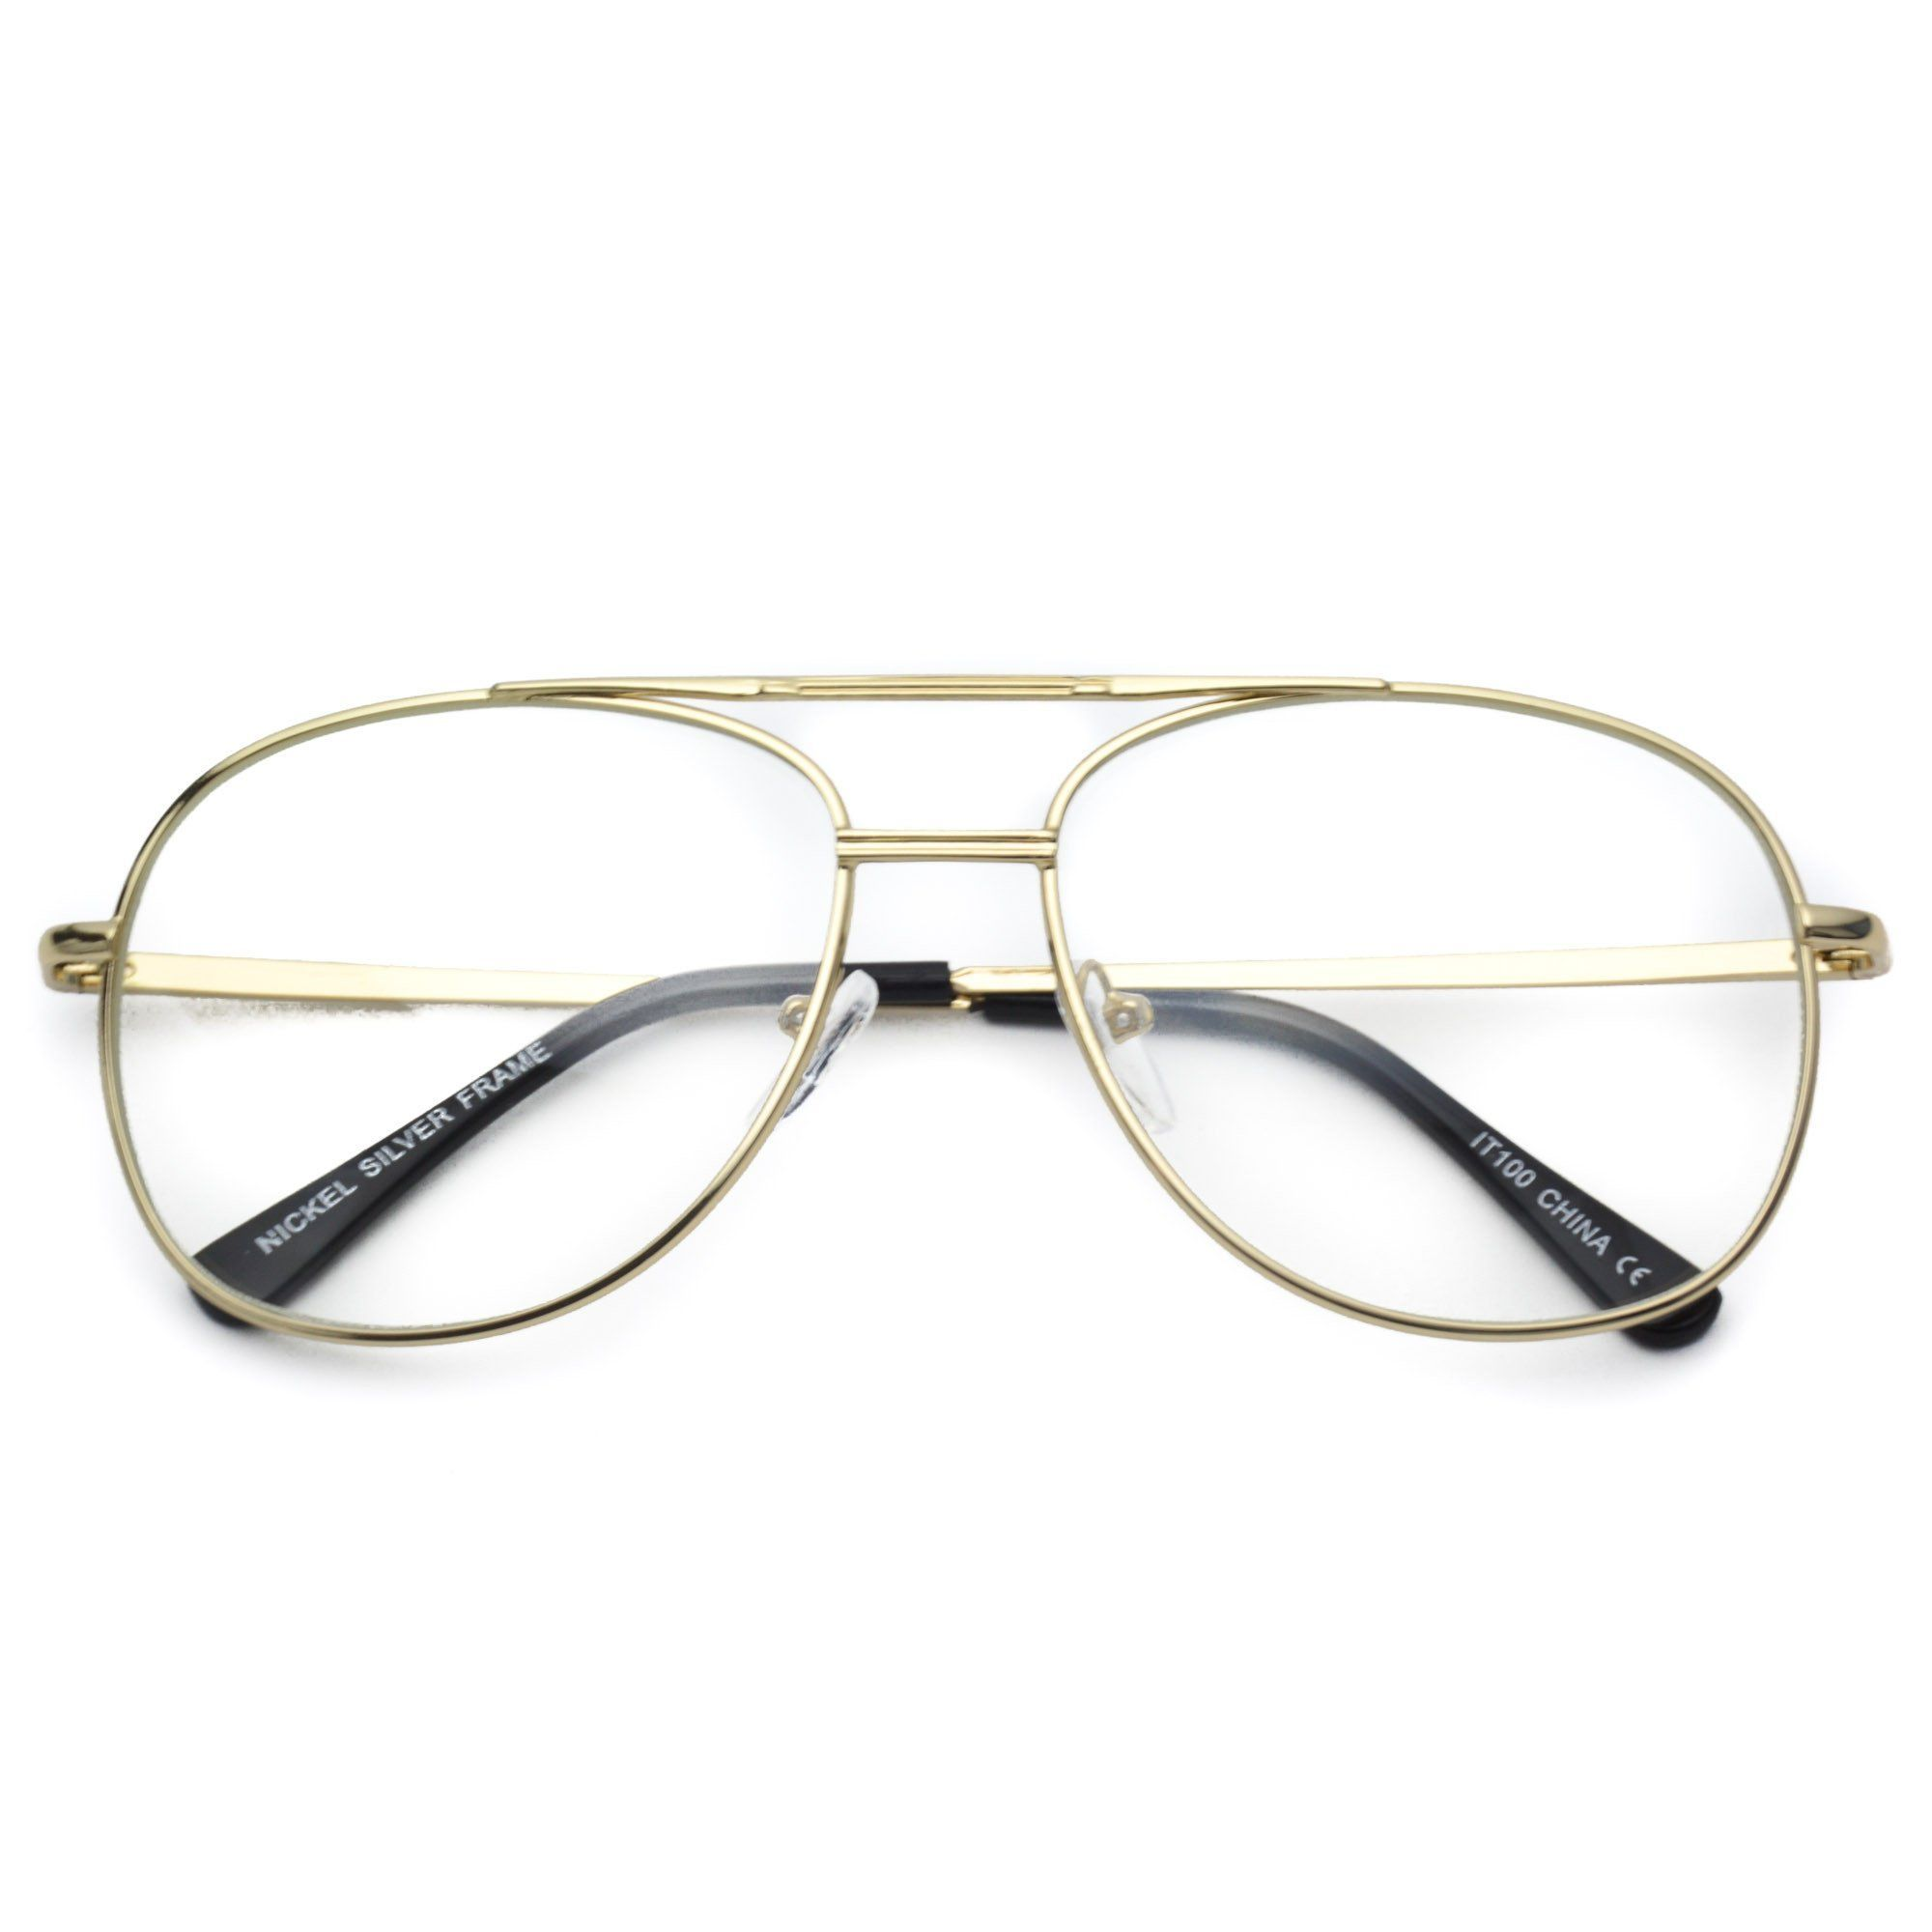 ffb6293b969 Addison 90 s Metal Frame Gold Silver Clear Aviator Glasses ...